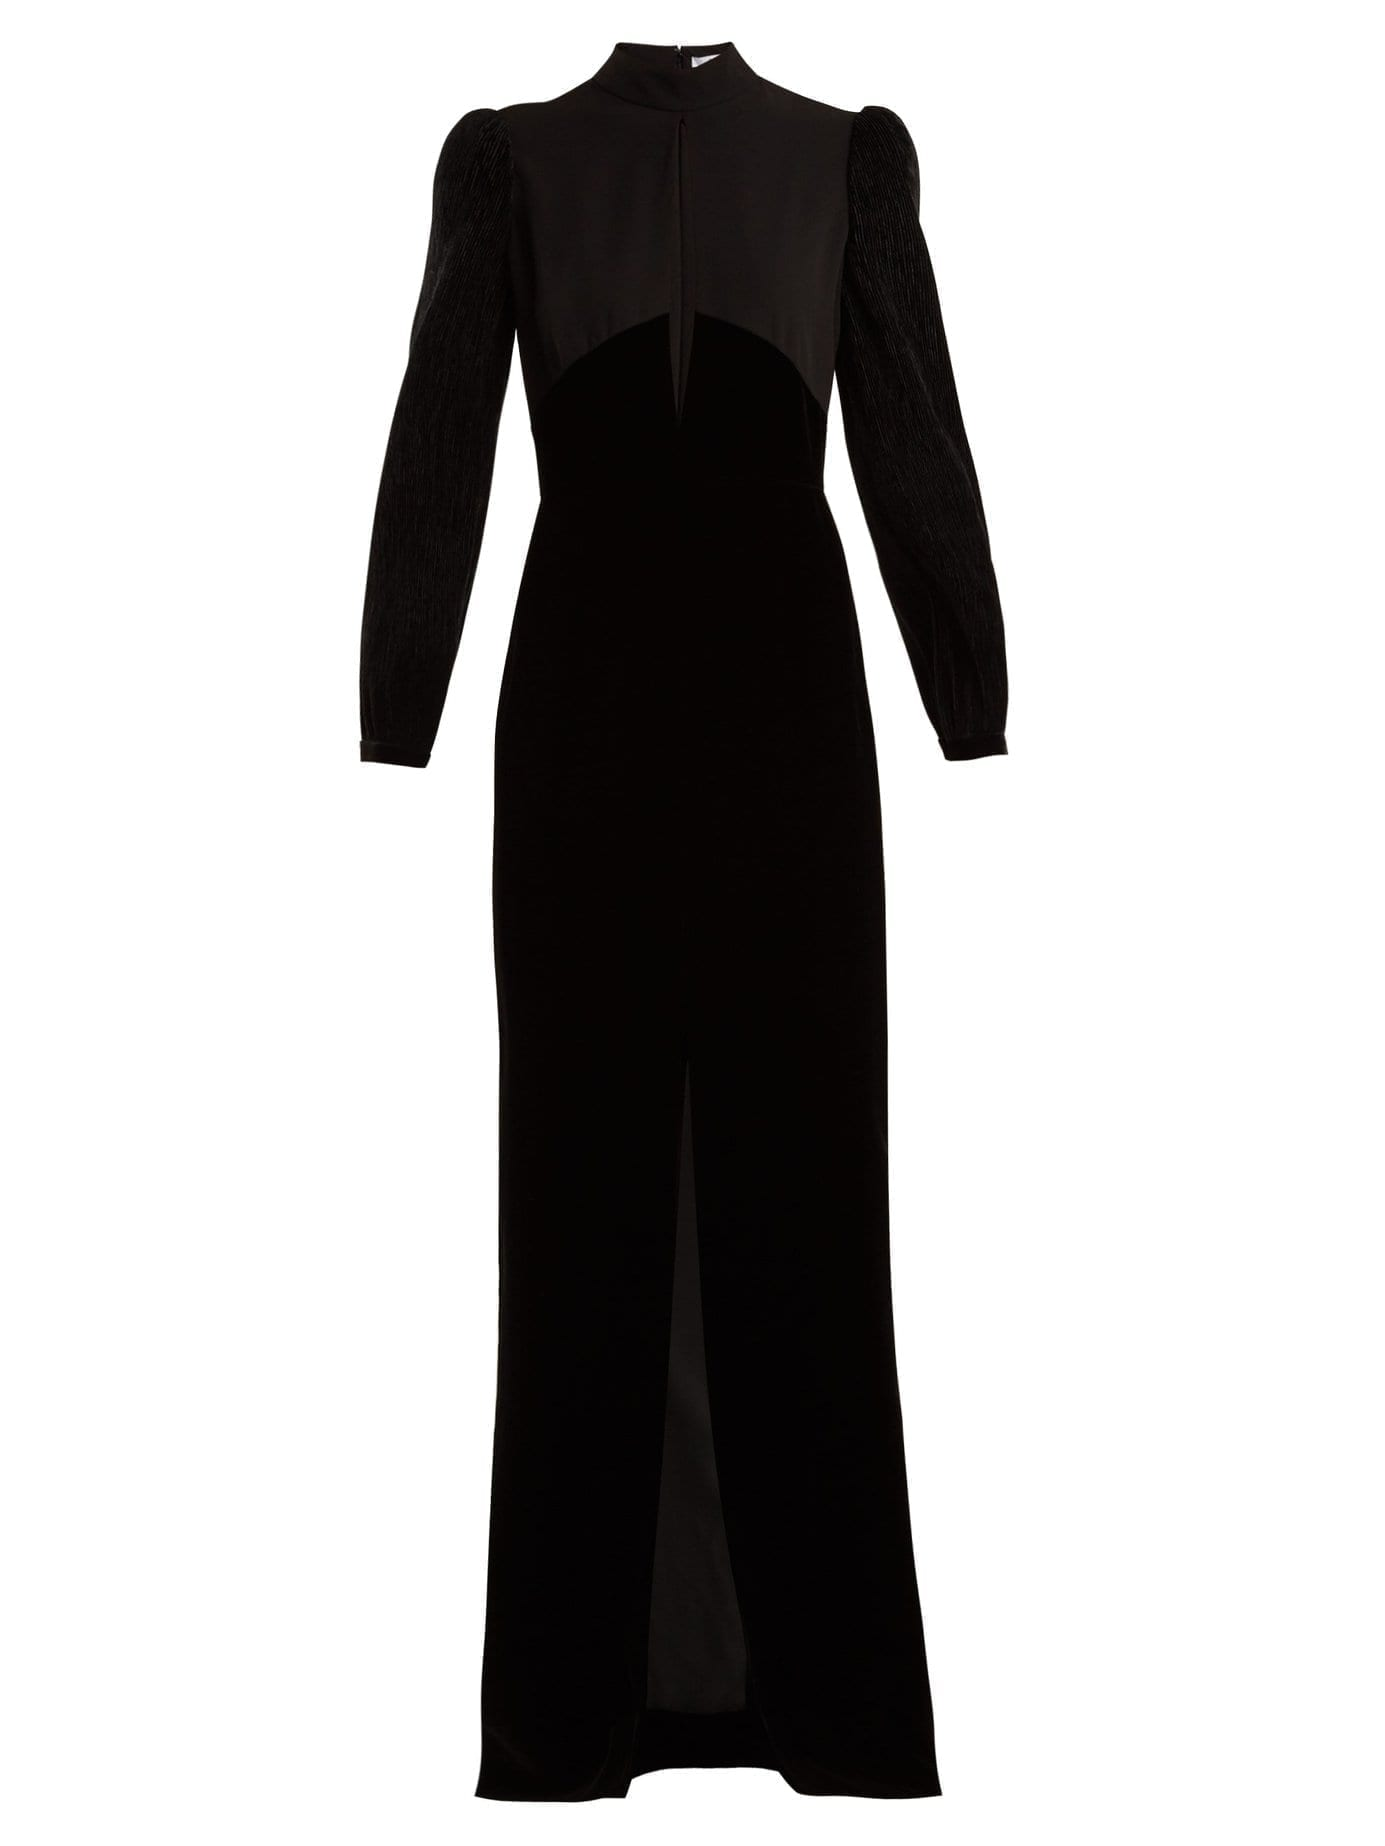 GIVENCHY Velvet And Crepe Black Gown